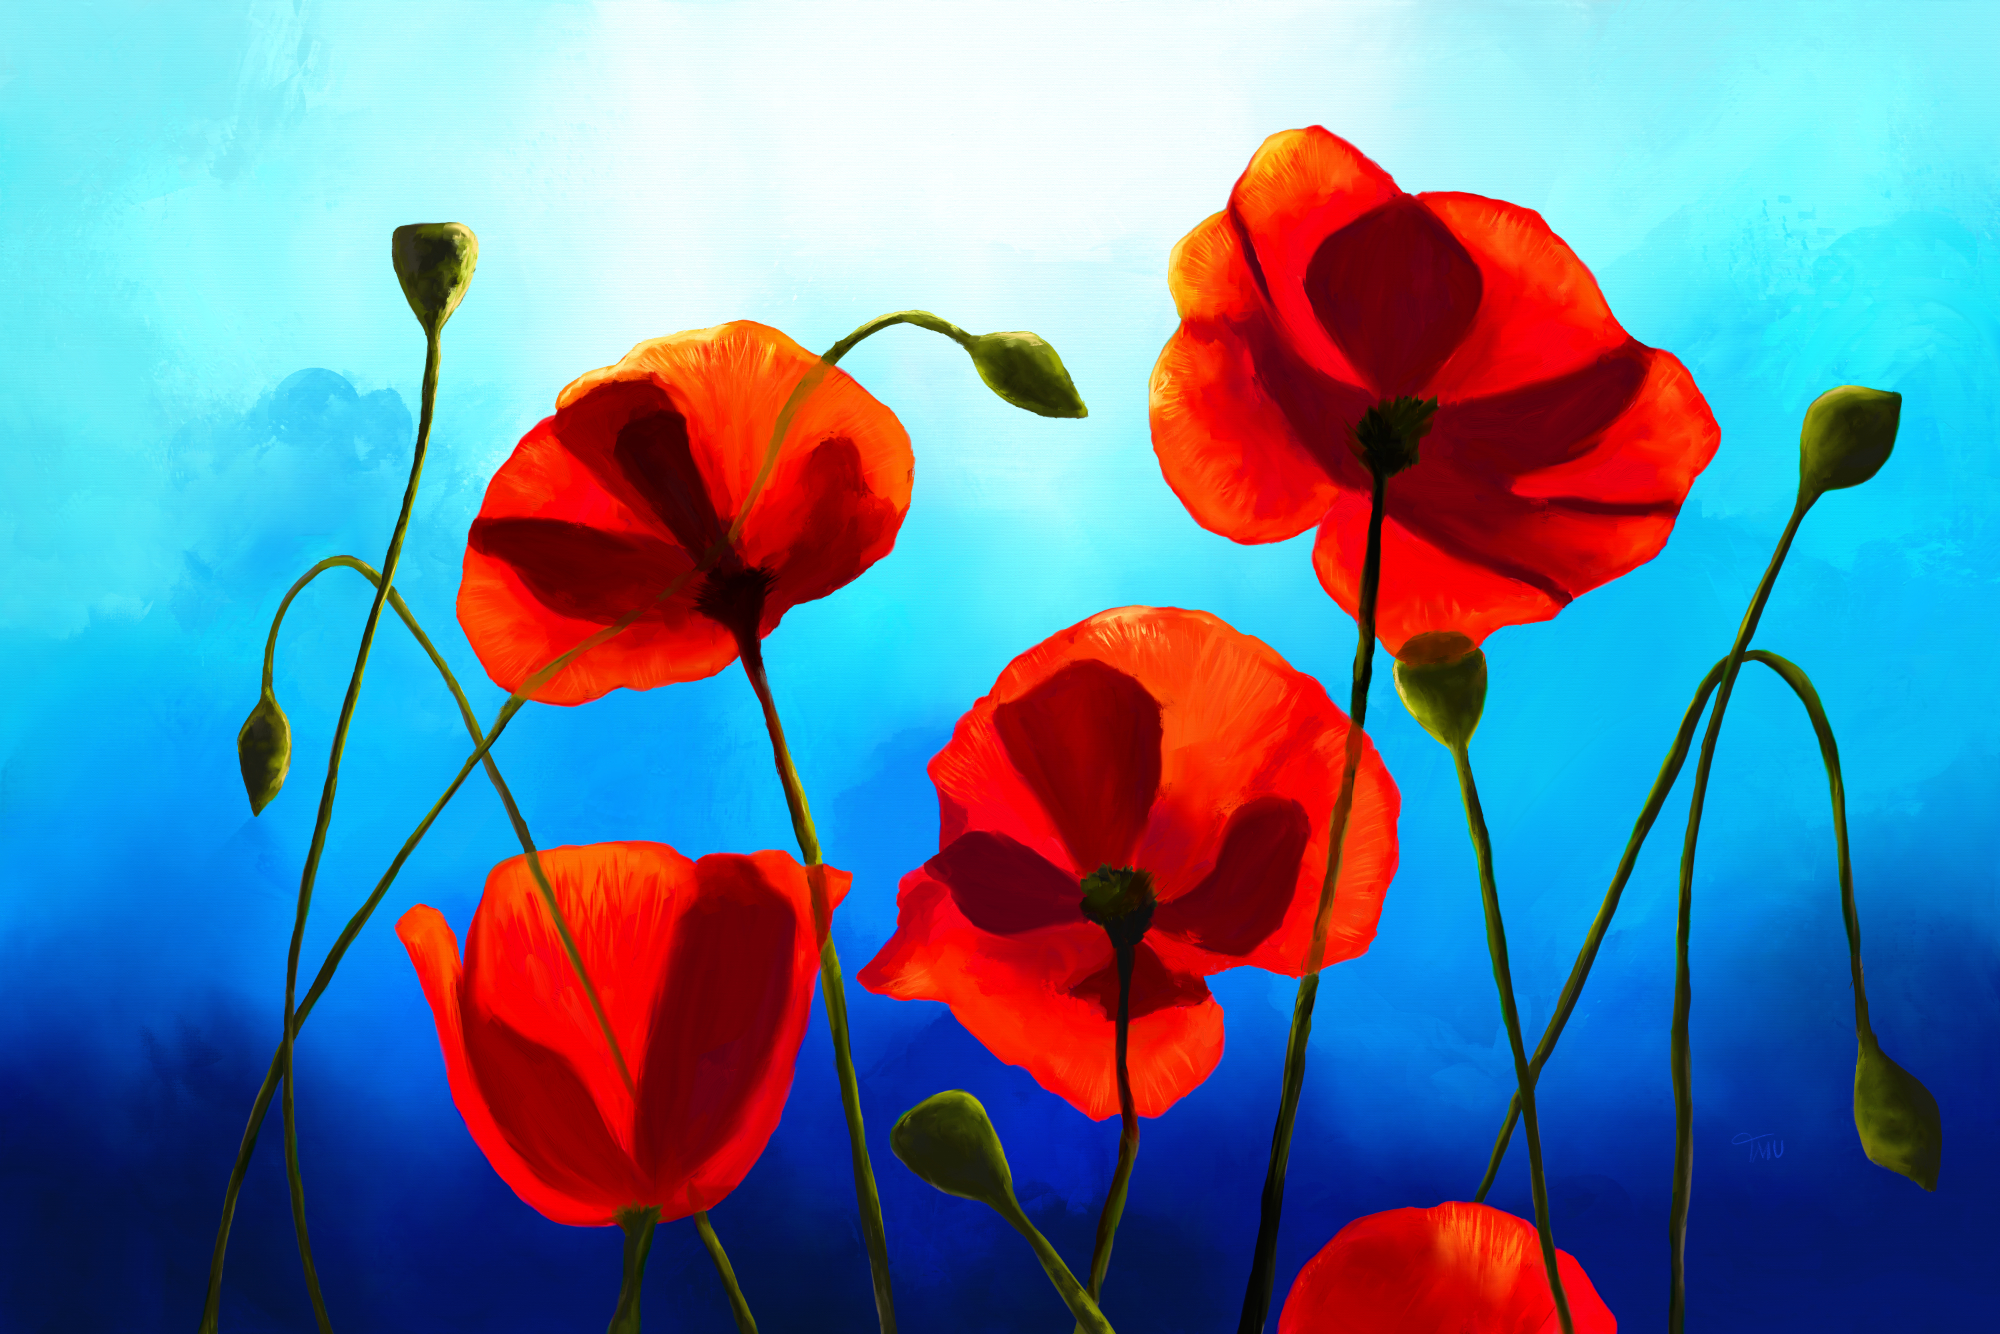 Digital acrylic painting of Red Poppies and a blue Sky